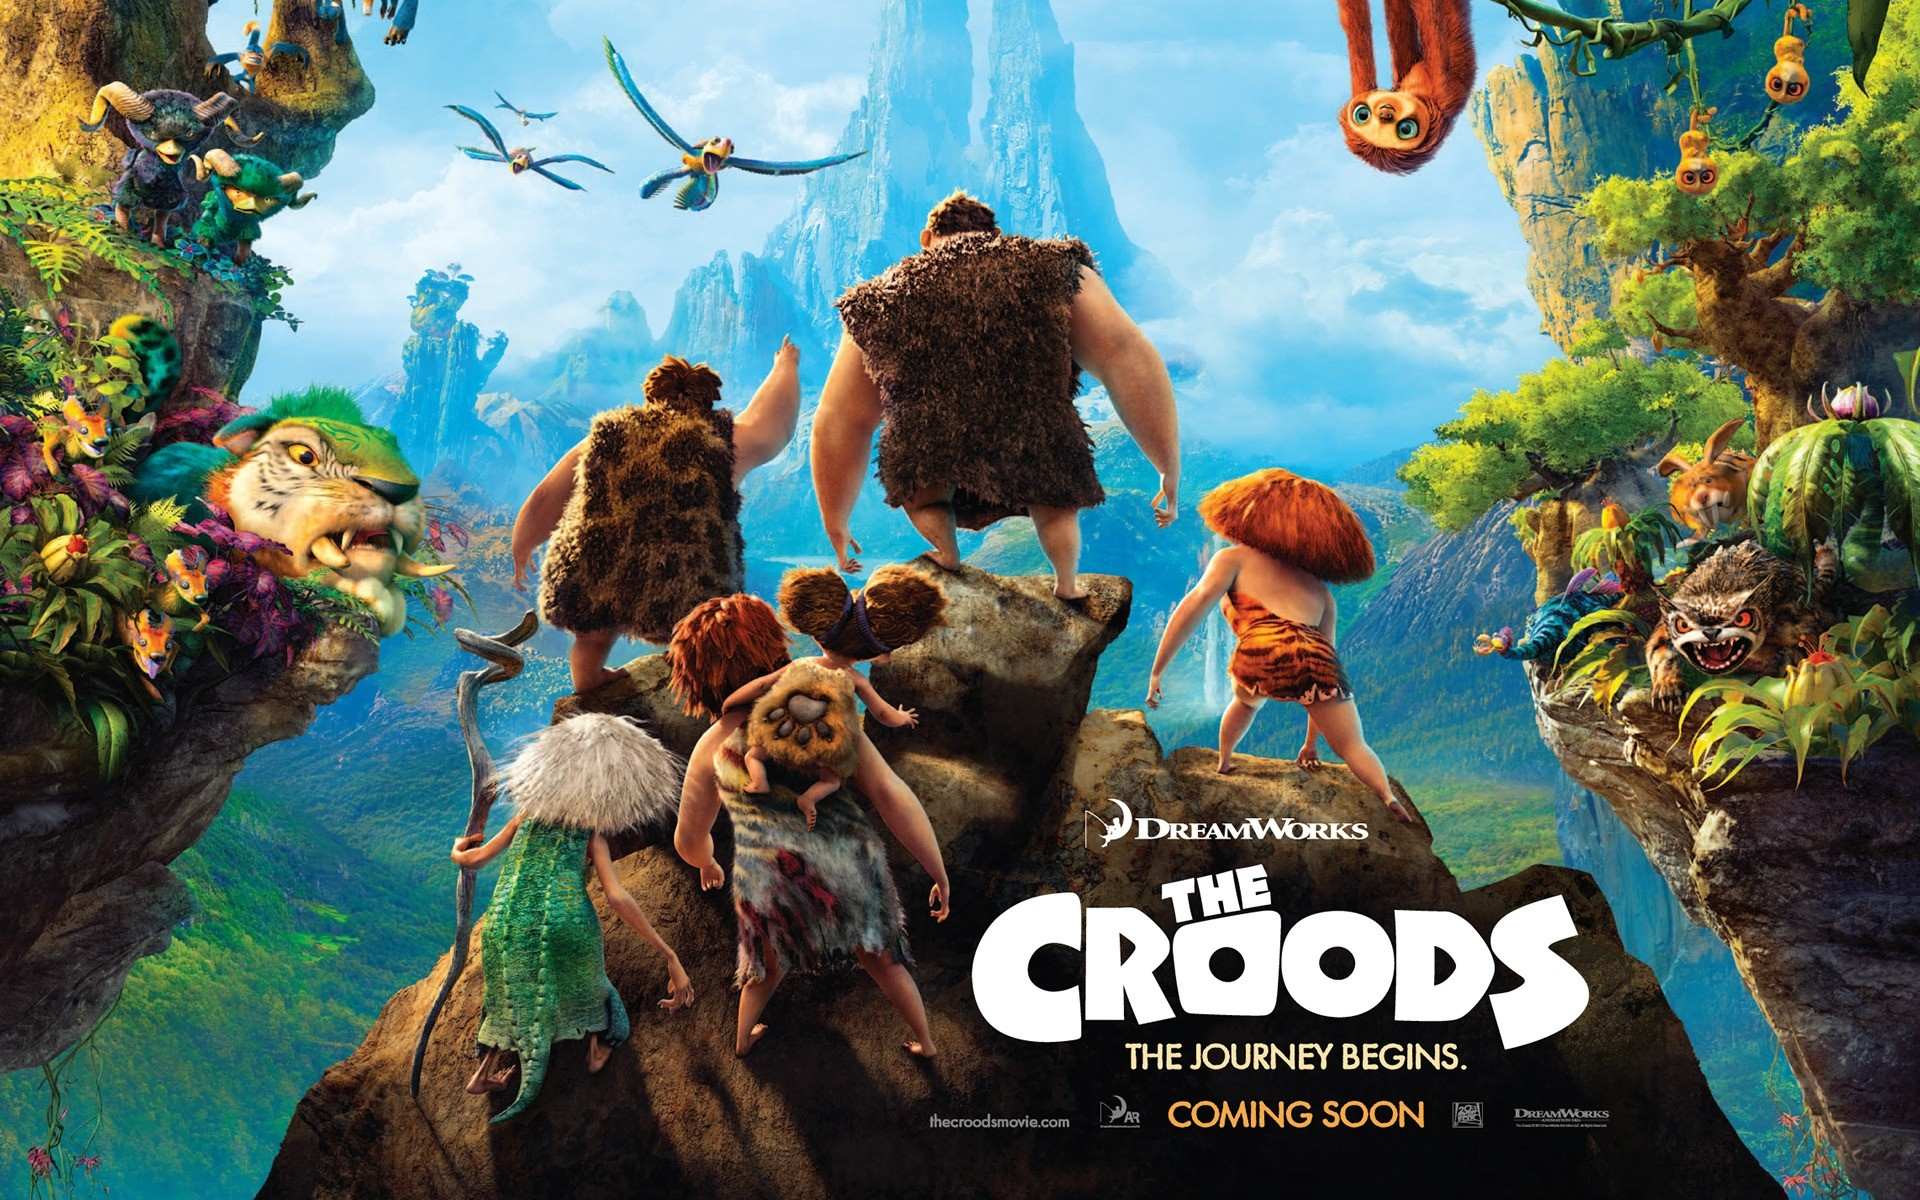 The Croods 2013 Movie - Phone wallpapers